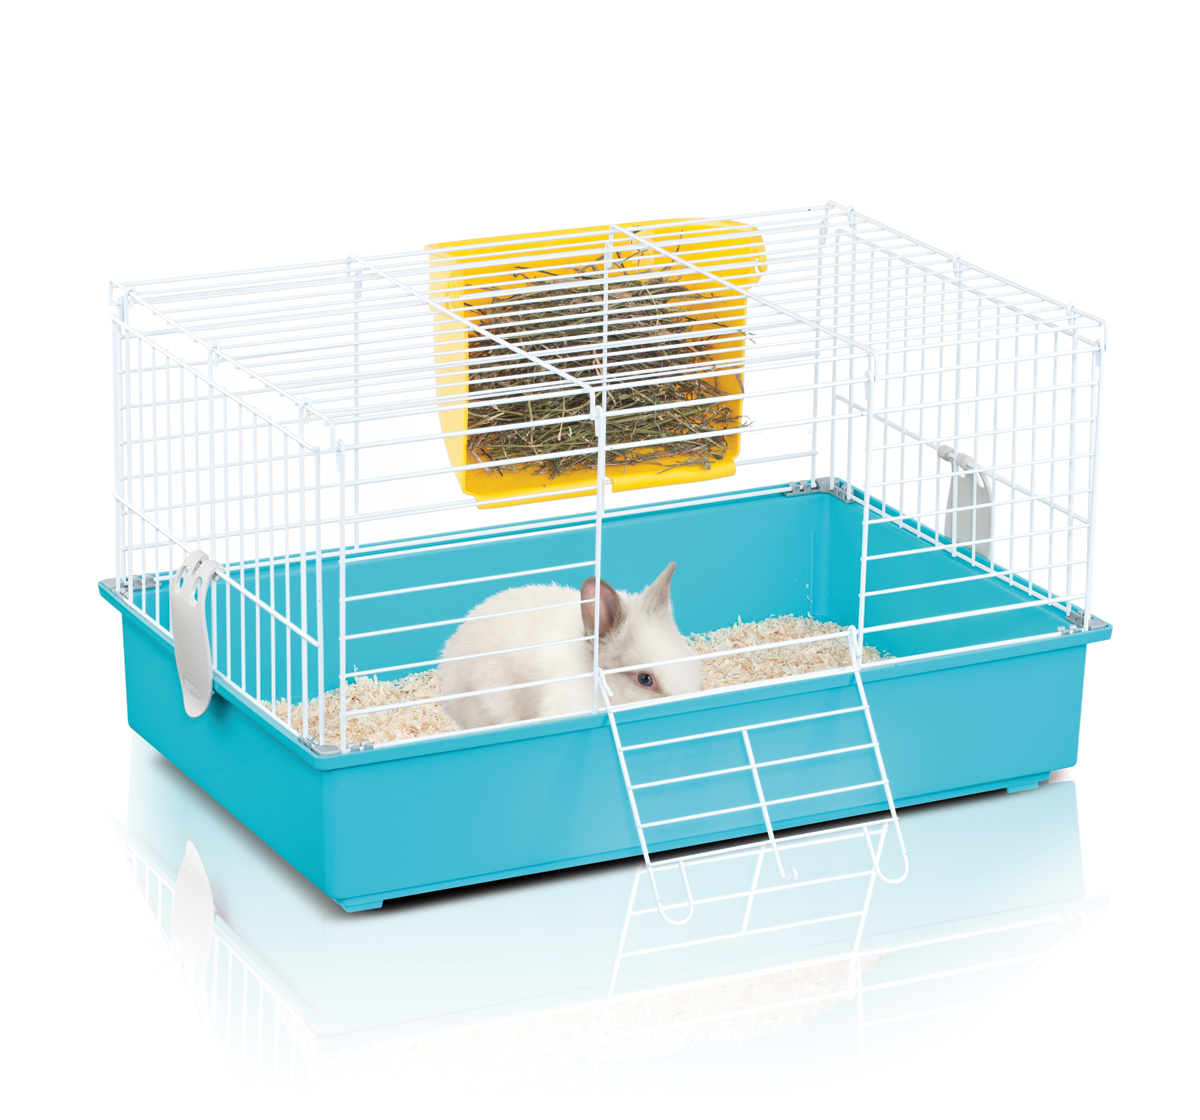 Imac cavia 3 guinea pig rabbit cage lxwxh 24x16x14 for Guinea pig and cage for sale